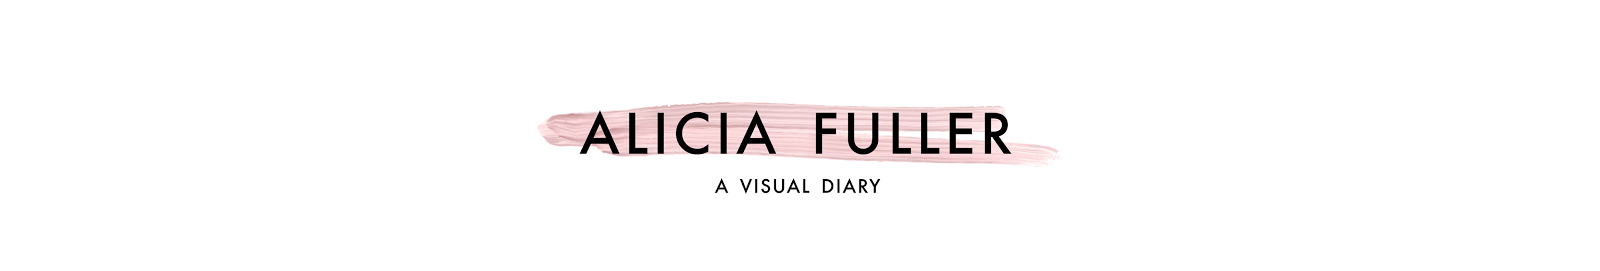 Alicia Fuller | A Visual Diary